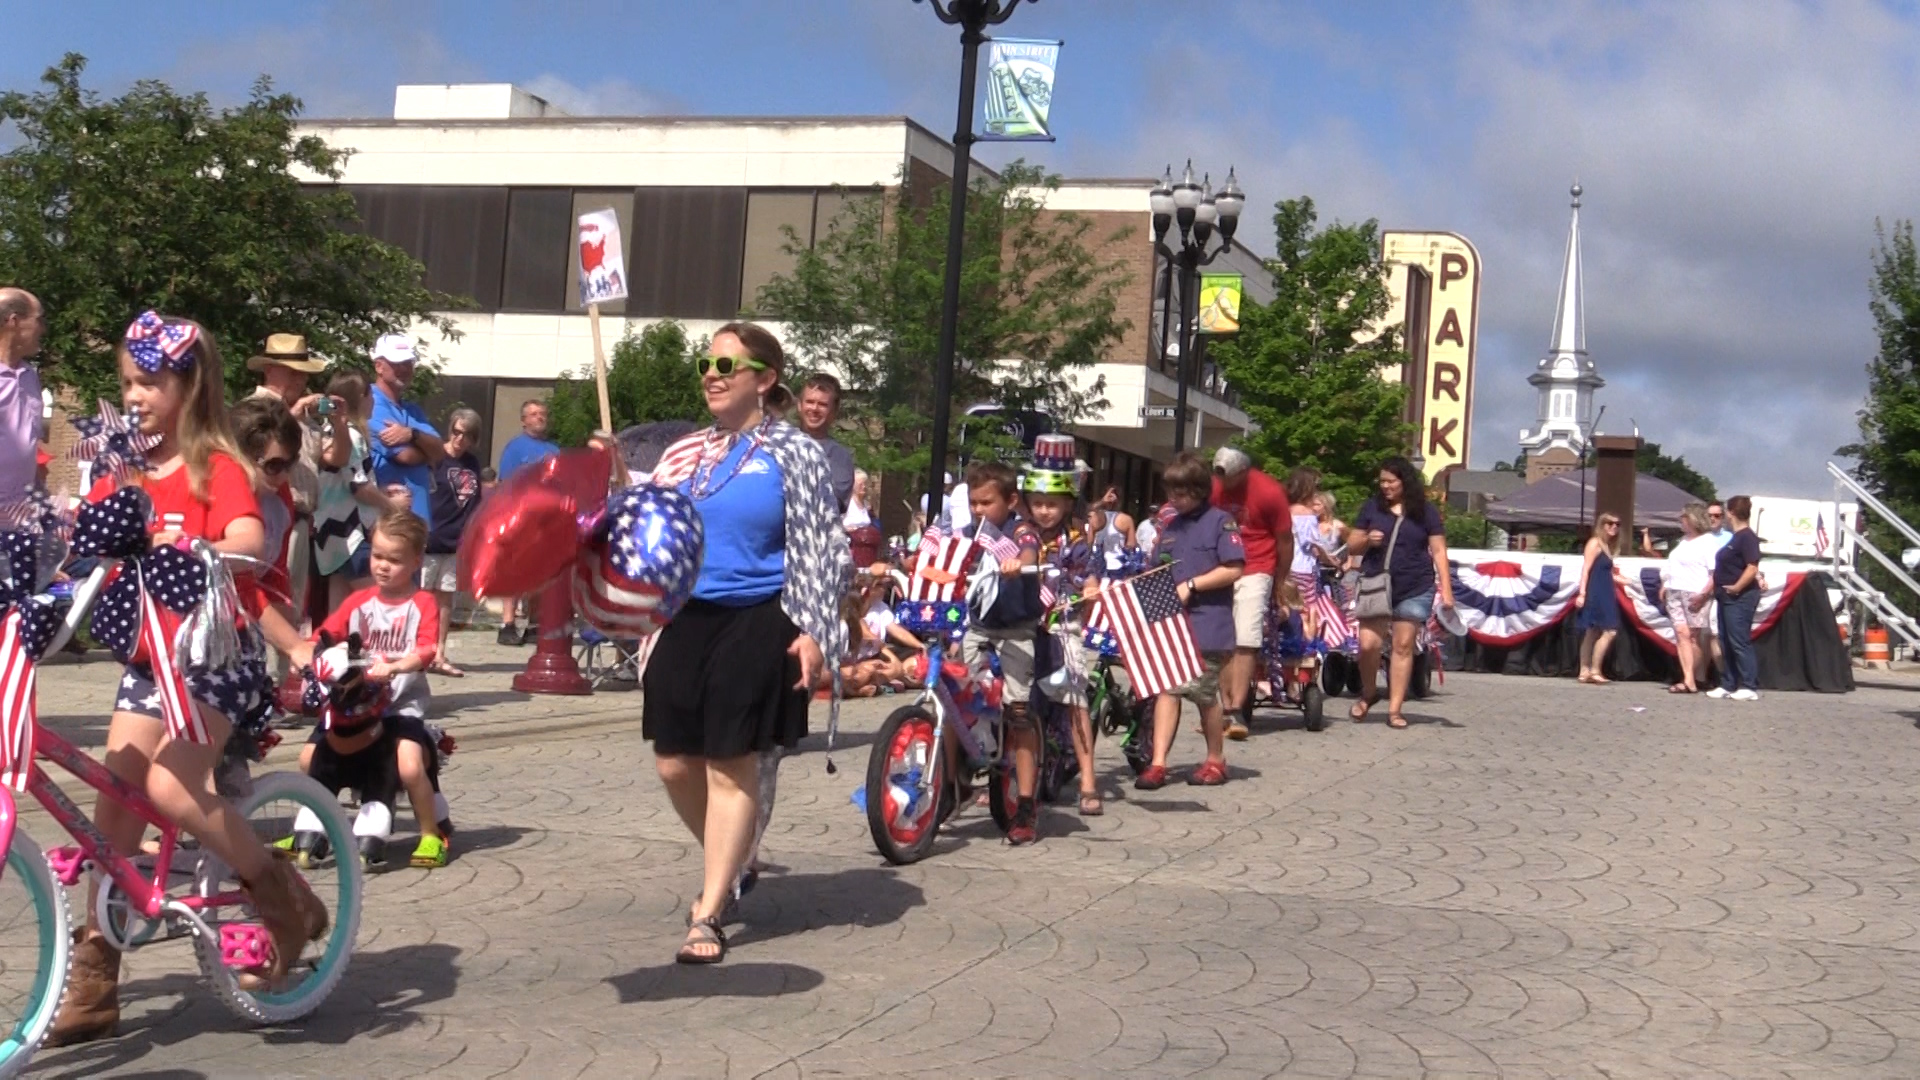 VIDEO - The Yankee Doodle parade